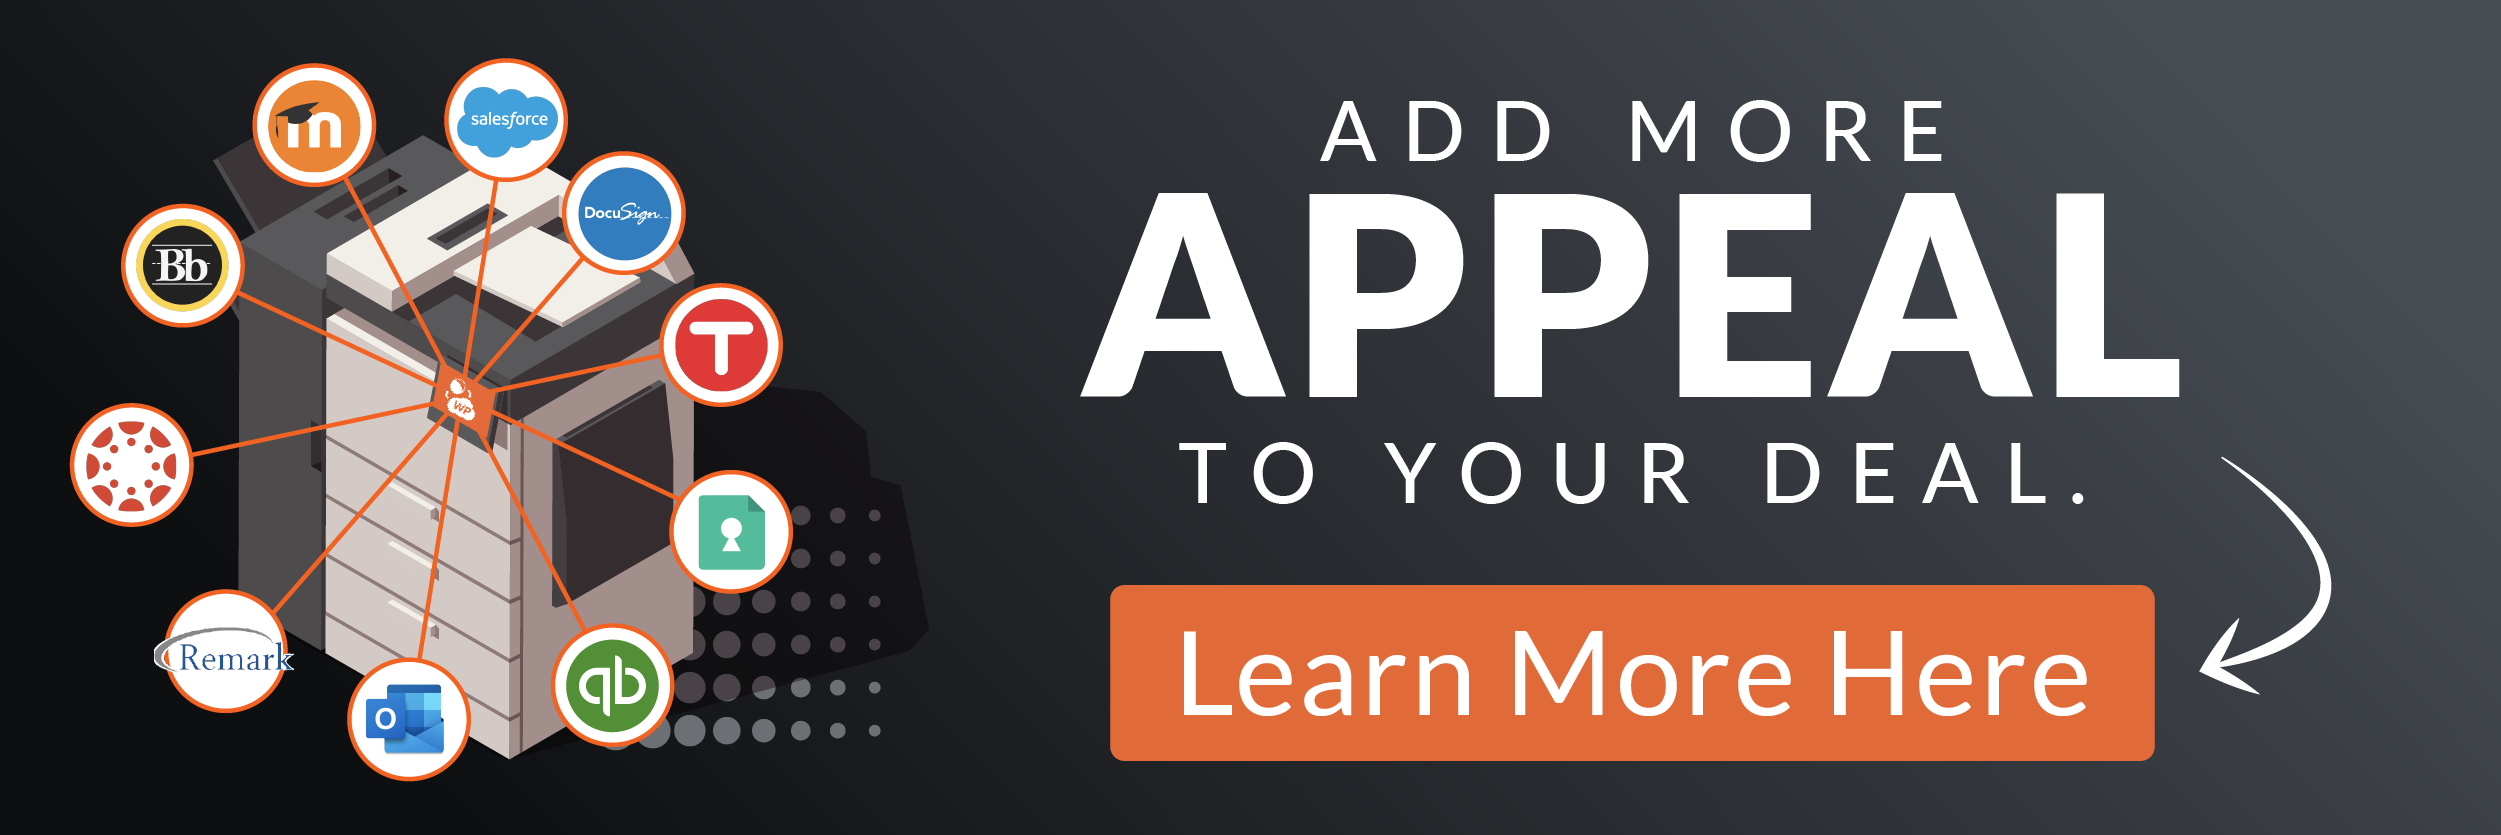 Add More Appeal To Your Deal, Click Here To Learn More